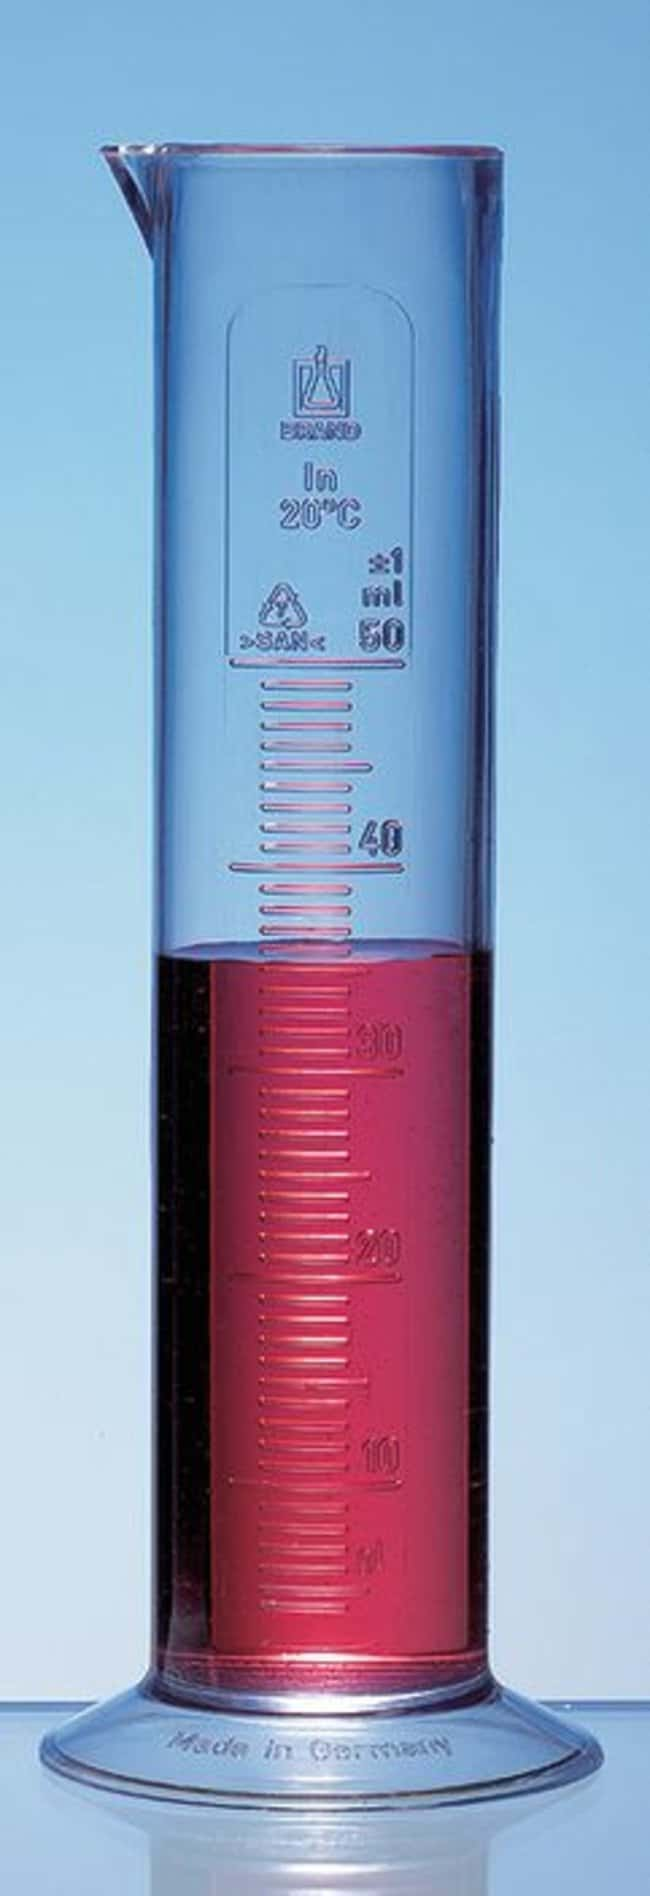 BRAND™Low Form Graduated Cylinder Capacity: 100 mL BRAND™Low Form Graduated Cylinder